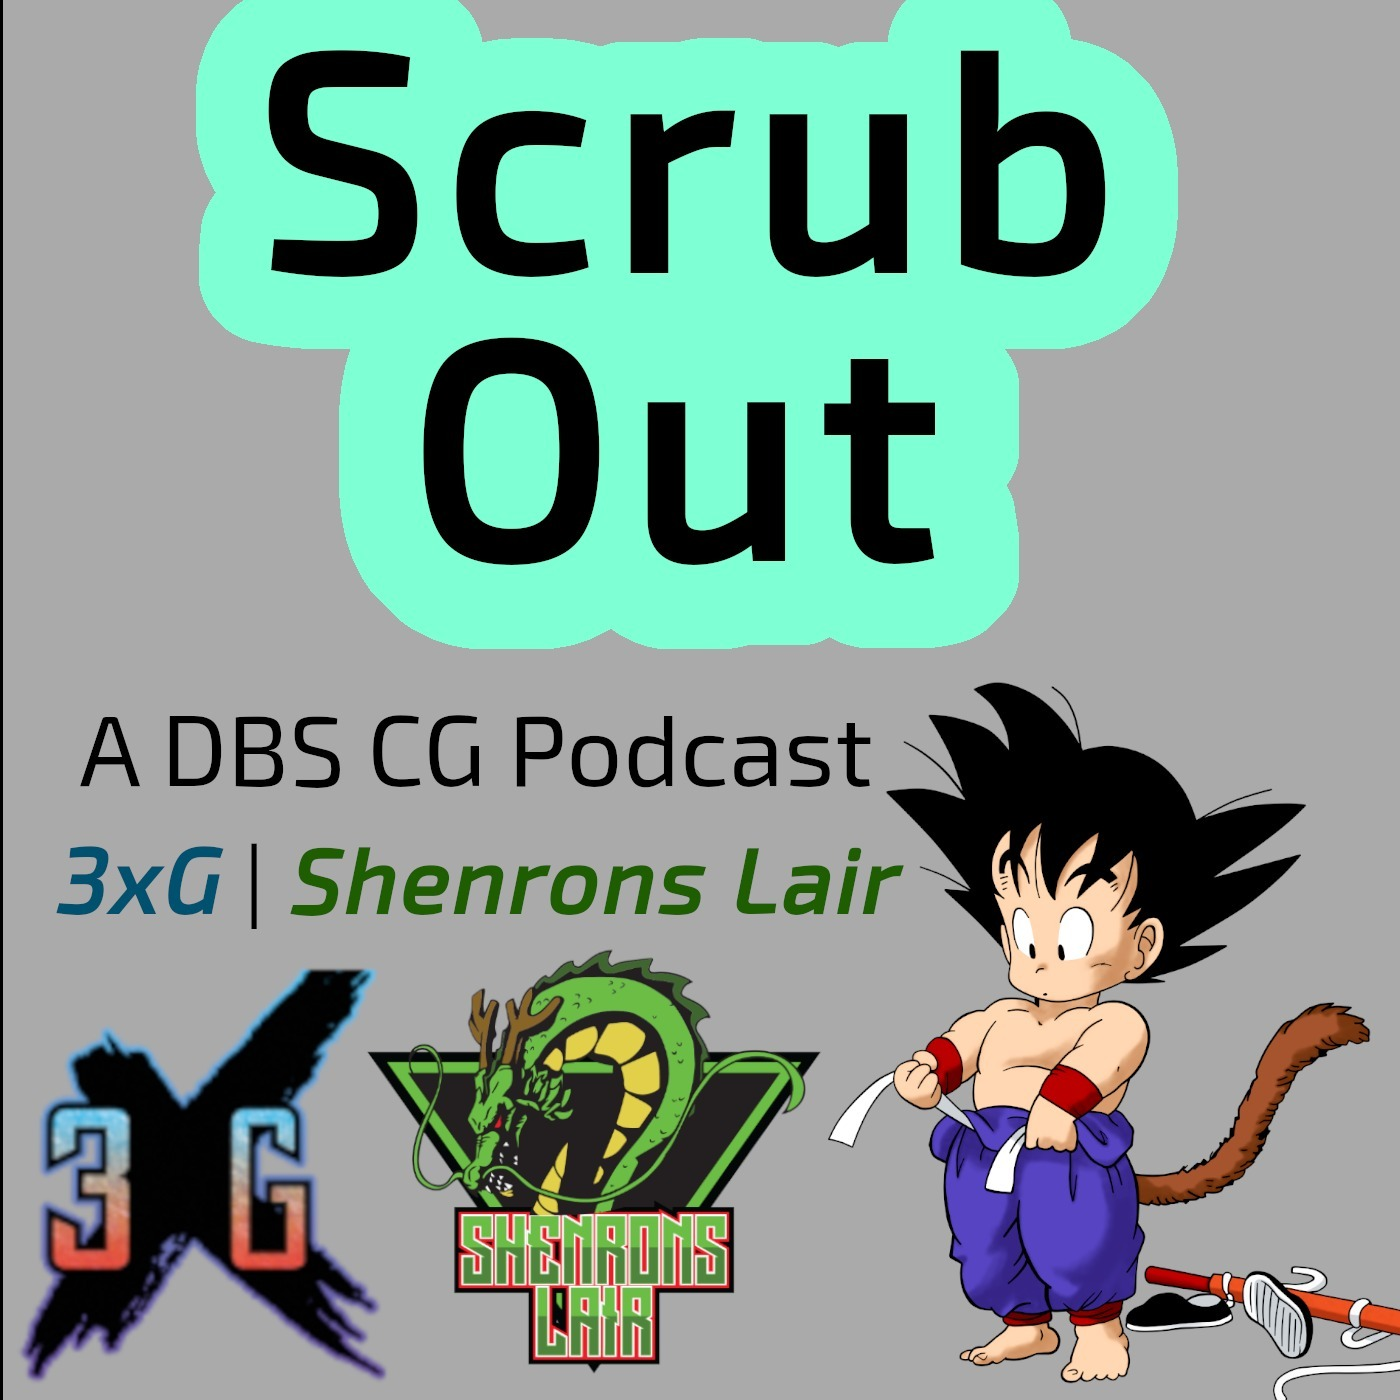 Scrub Out | DBS CG